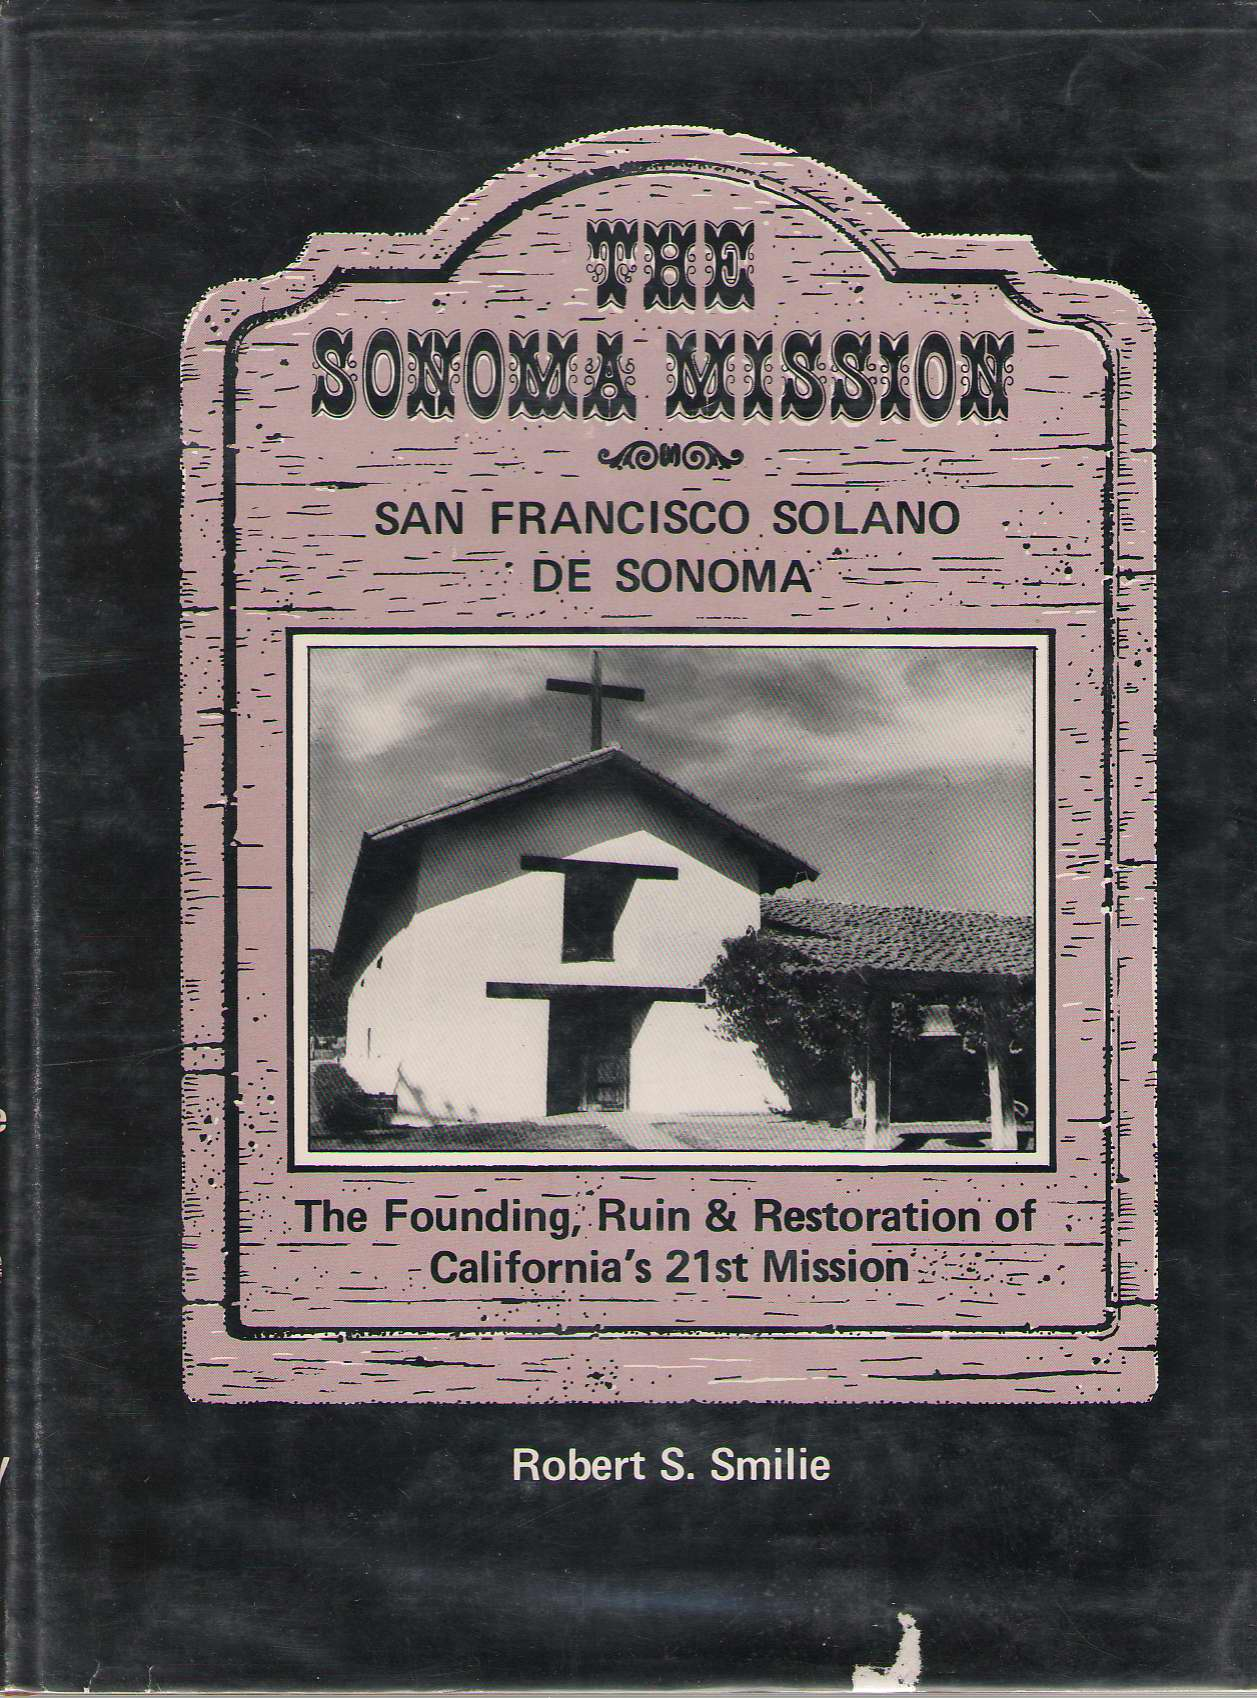 Sonoma Mission, San Francisco Solano de Sonoma  the Founding, Ruin and Restoration of California's 21st Mission, Smilie, Robert S